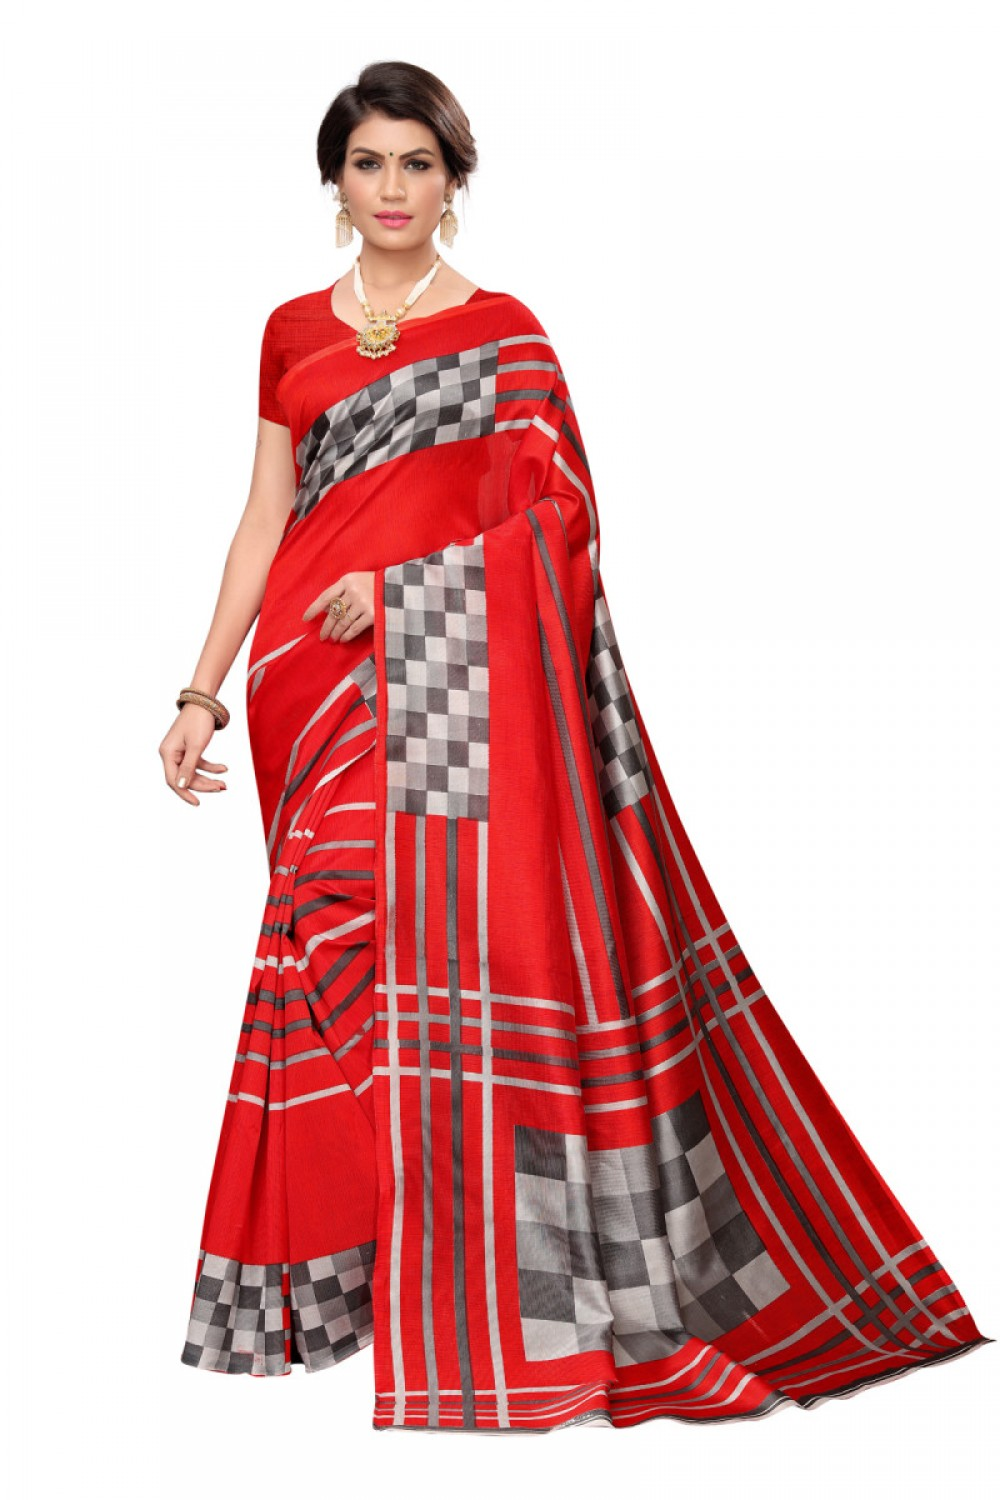 Admiring Red Colour Casual wear Denting saree